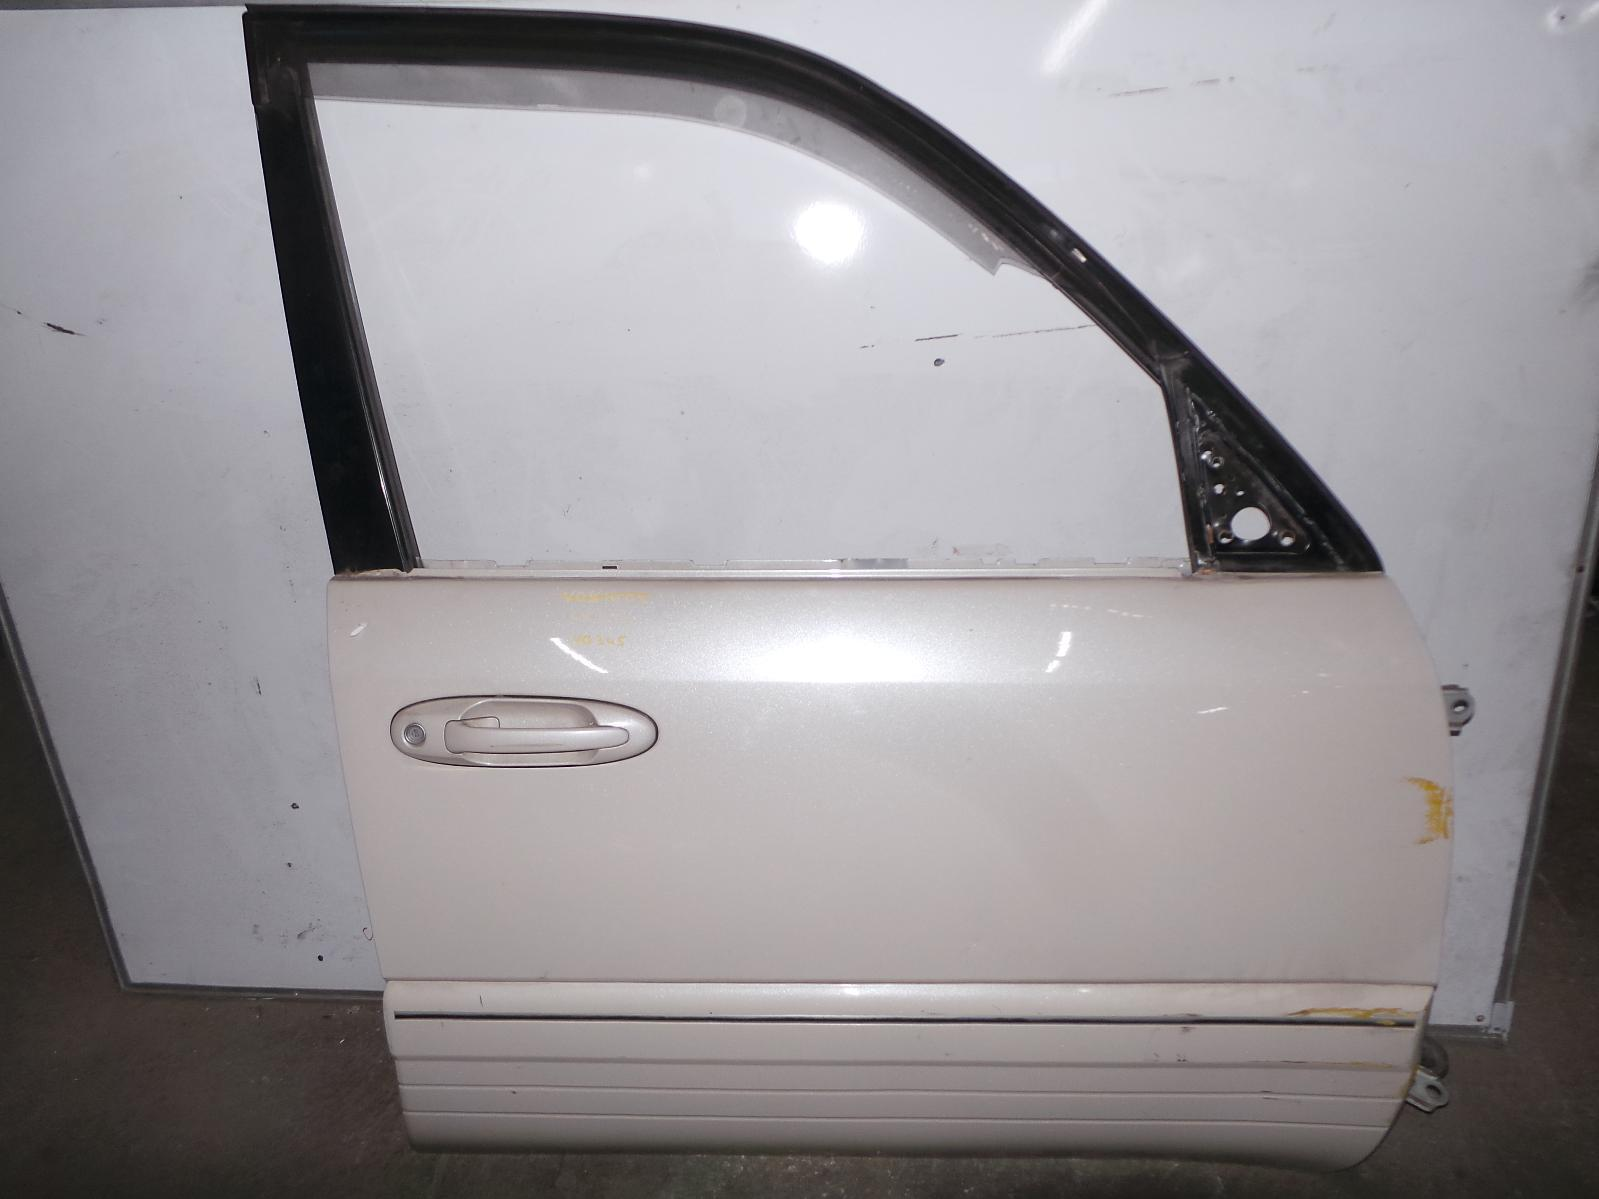 LEXUS LX470, Right Front Door, UZJ100R, 05/98-12/07